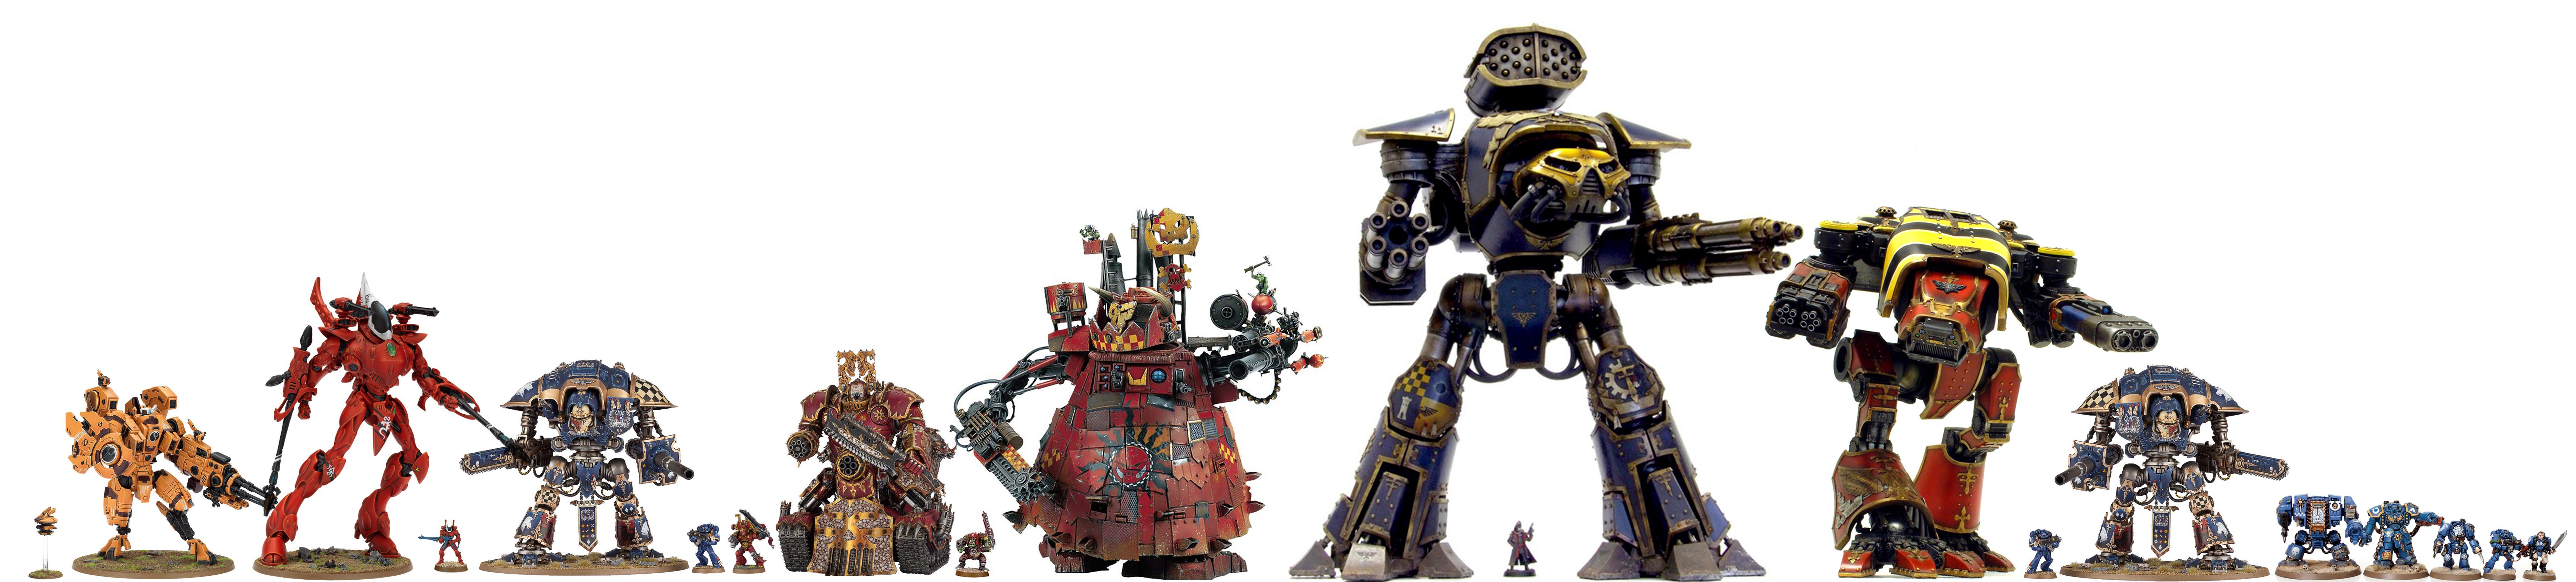 Imperial, Knights, Size, Titan